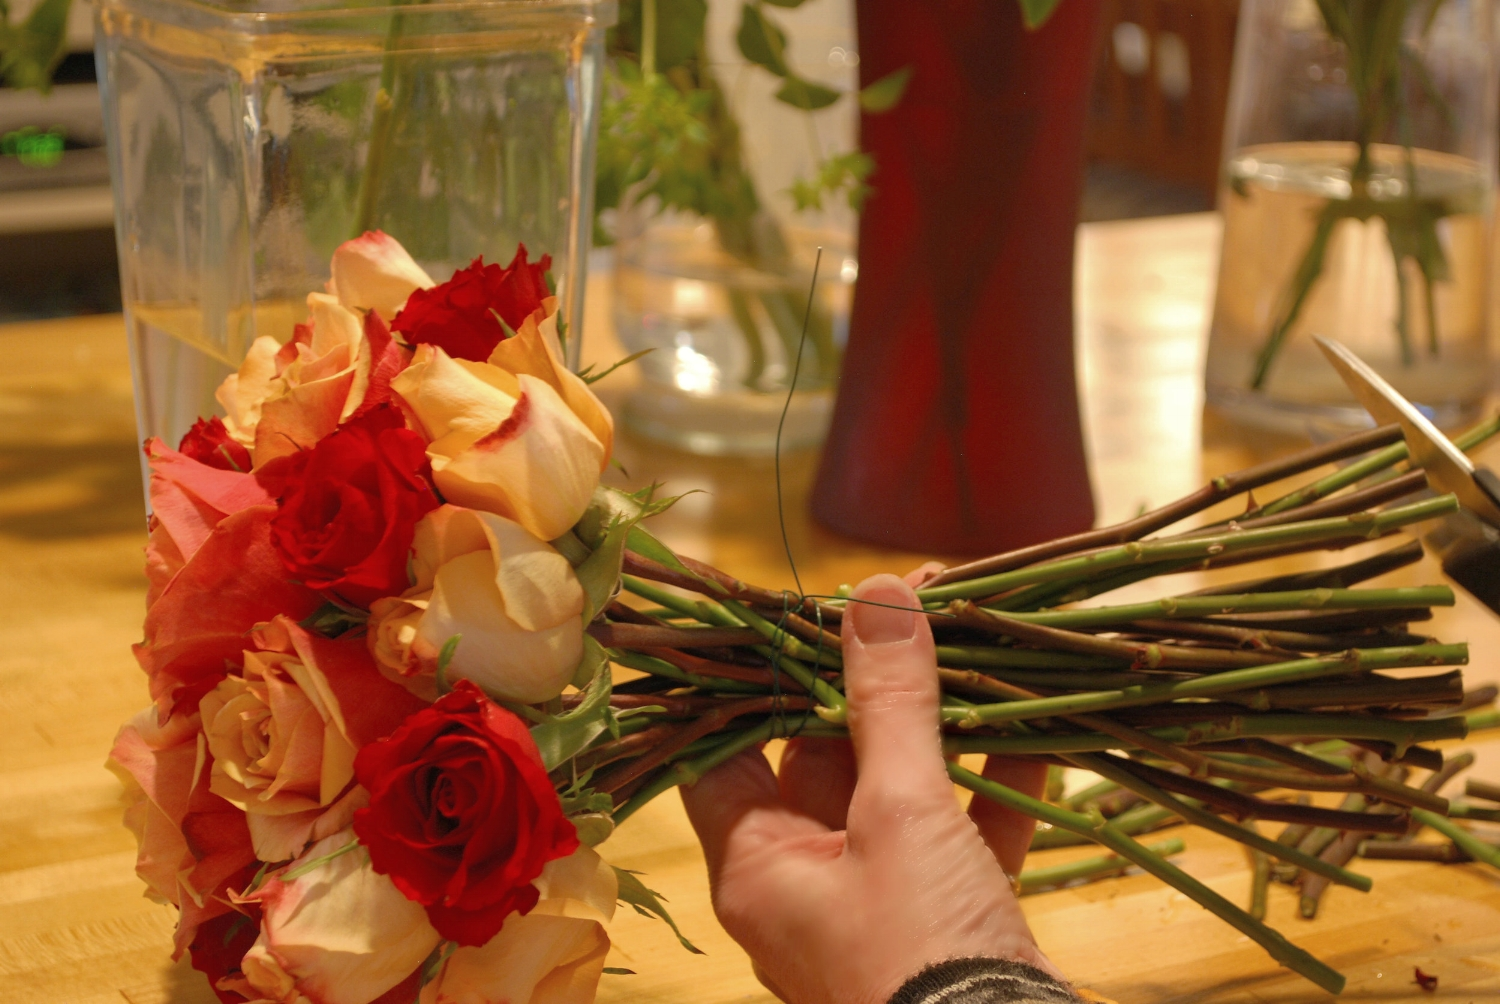 Step four: Wrap the stems with floral tape and trim the ends.